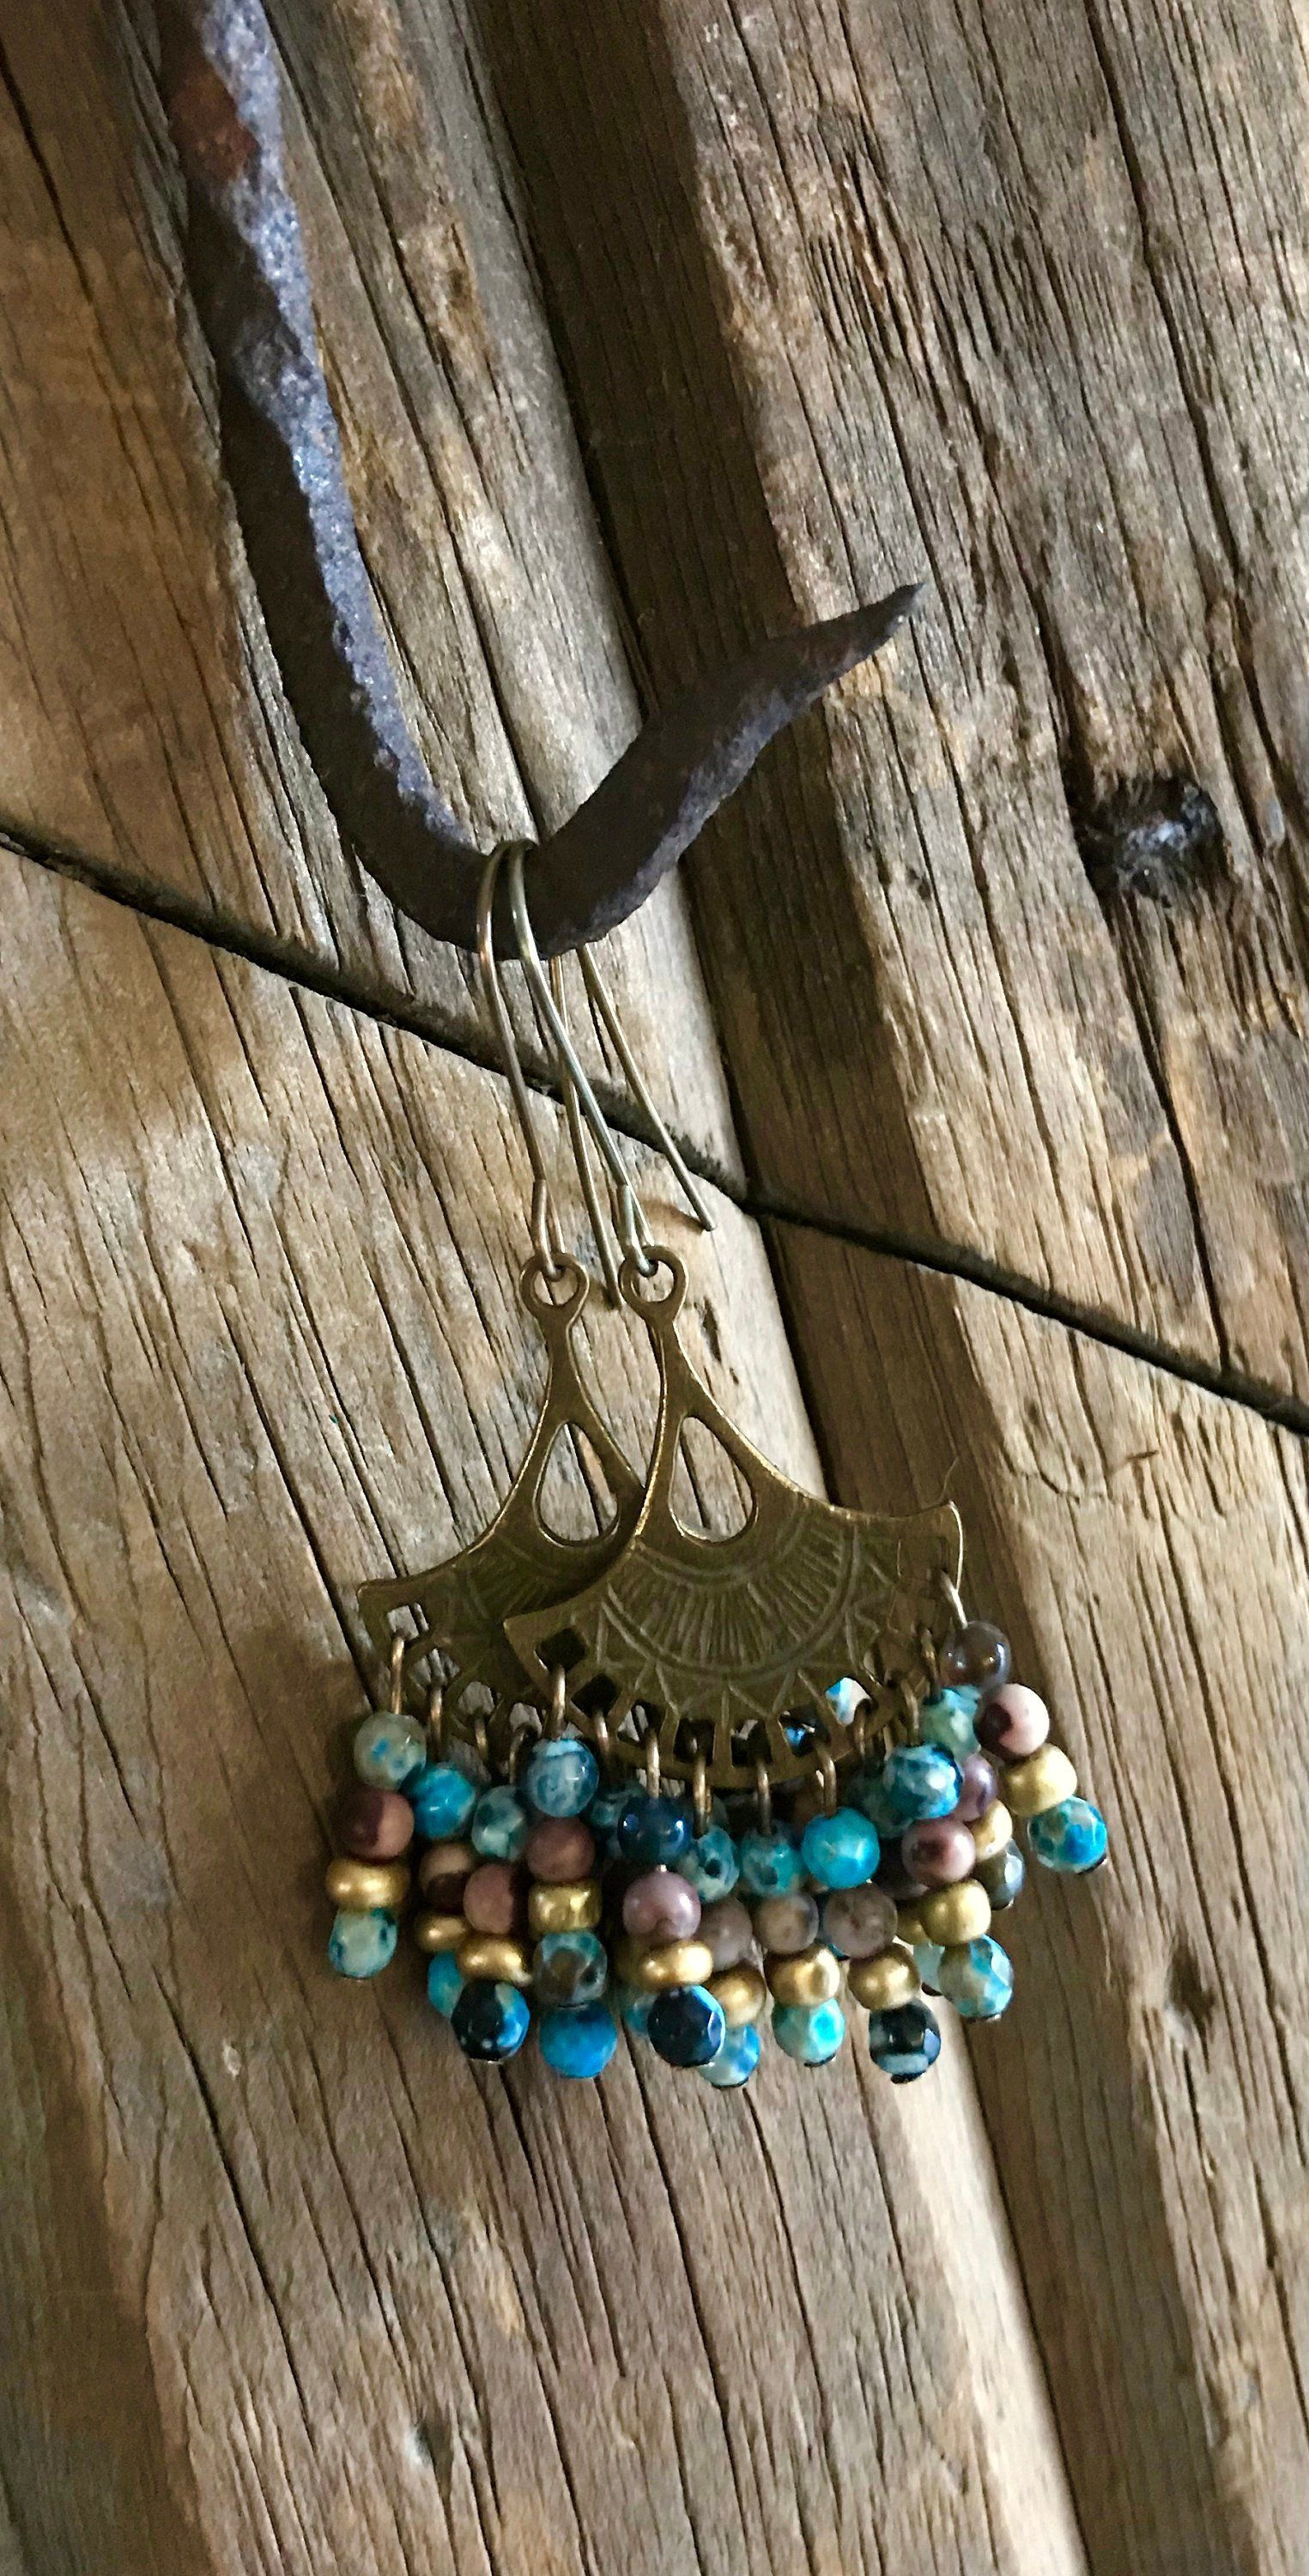 Pin on Our Etsy Jewelry Store